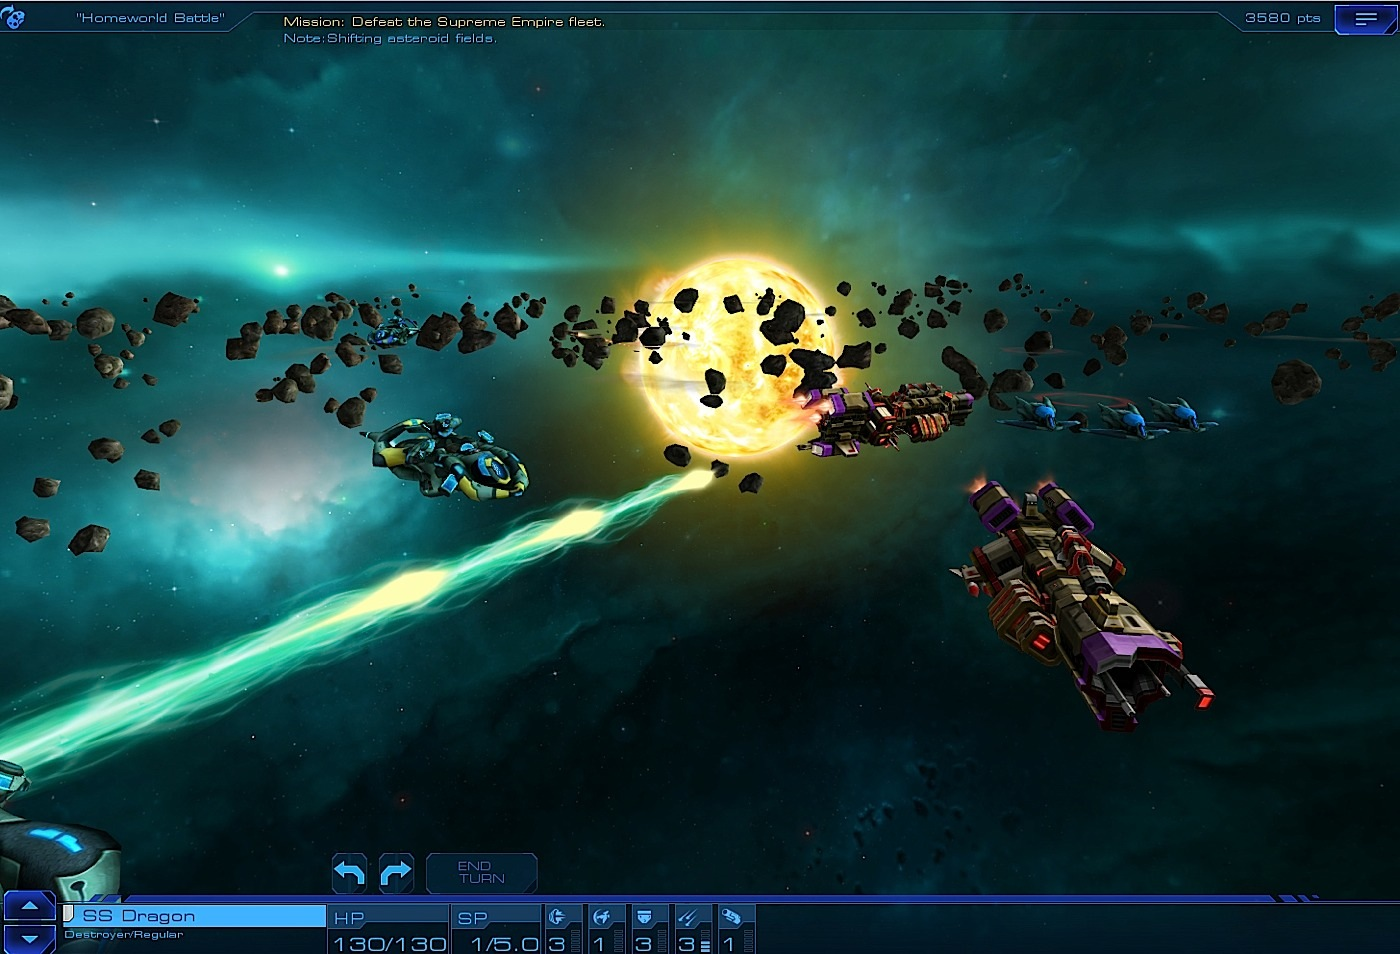 Sid Meier's Starships screenshot.